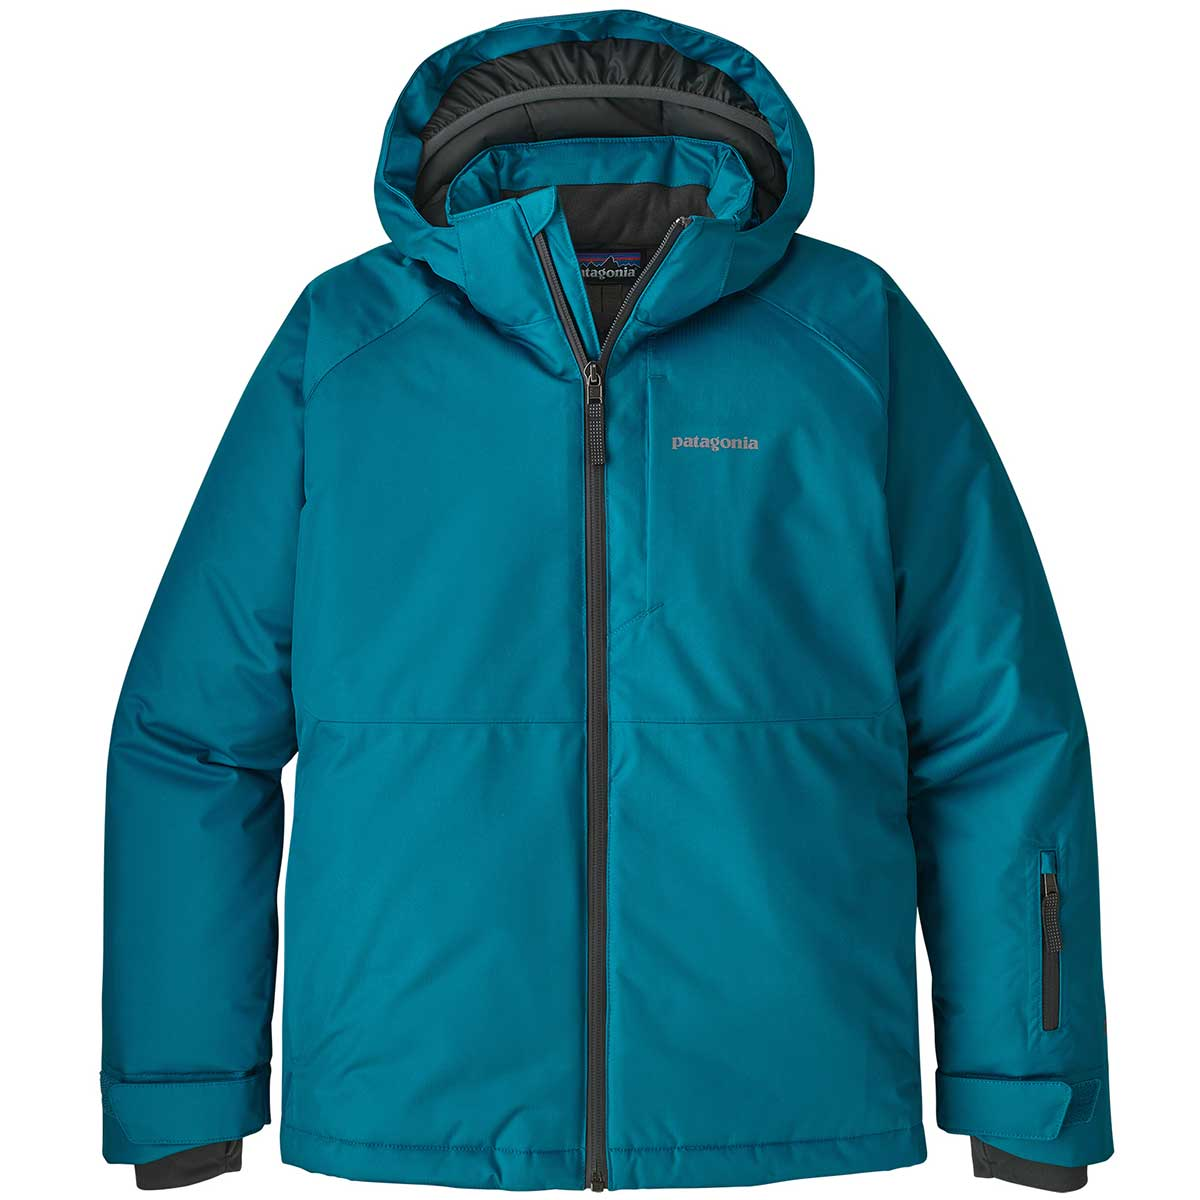 Patagonia boy' Snowshot Jacket in Balkan Blue front view